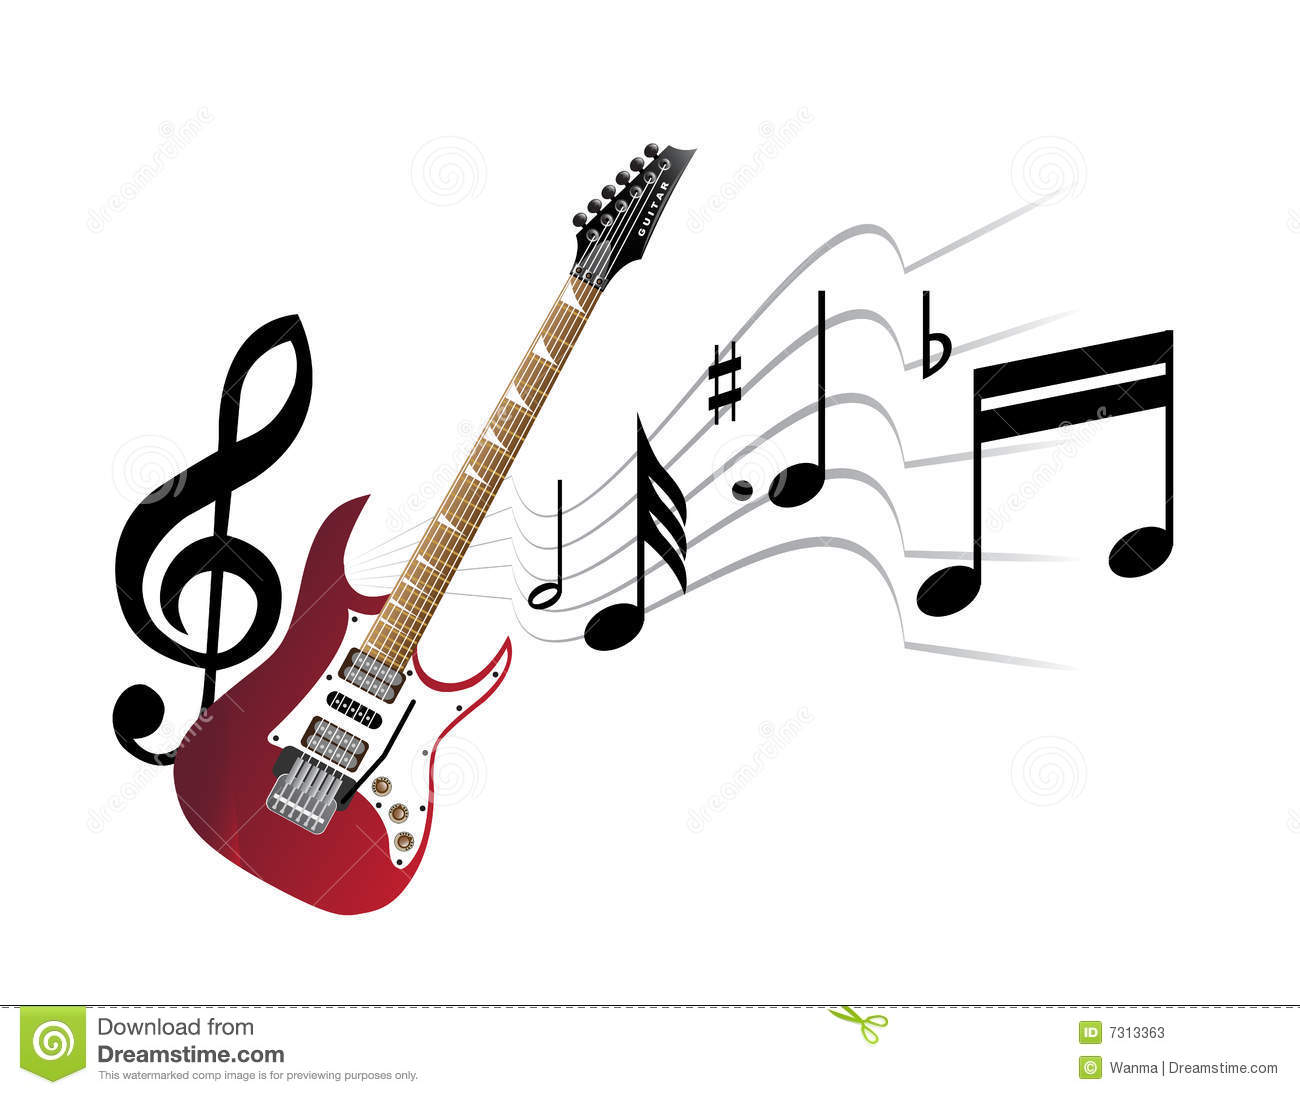 Treble Clef Images  Pixabay  Download Free Pictures